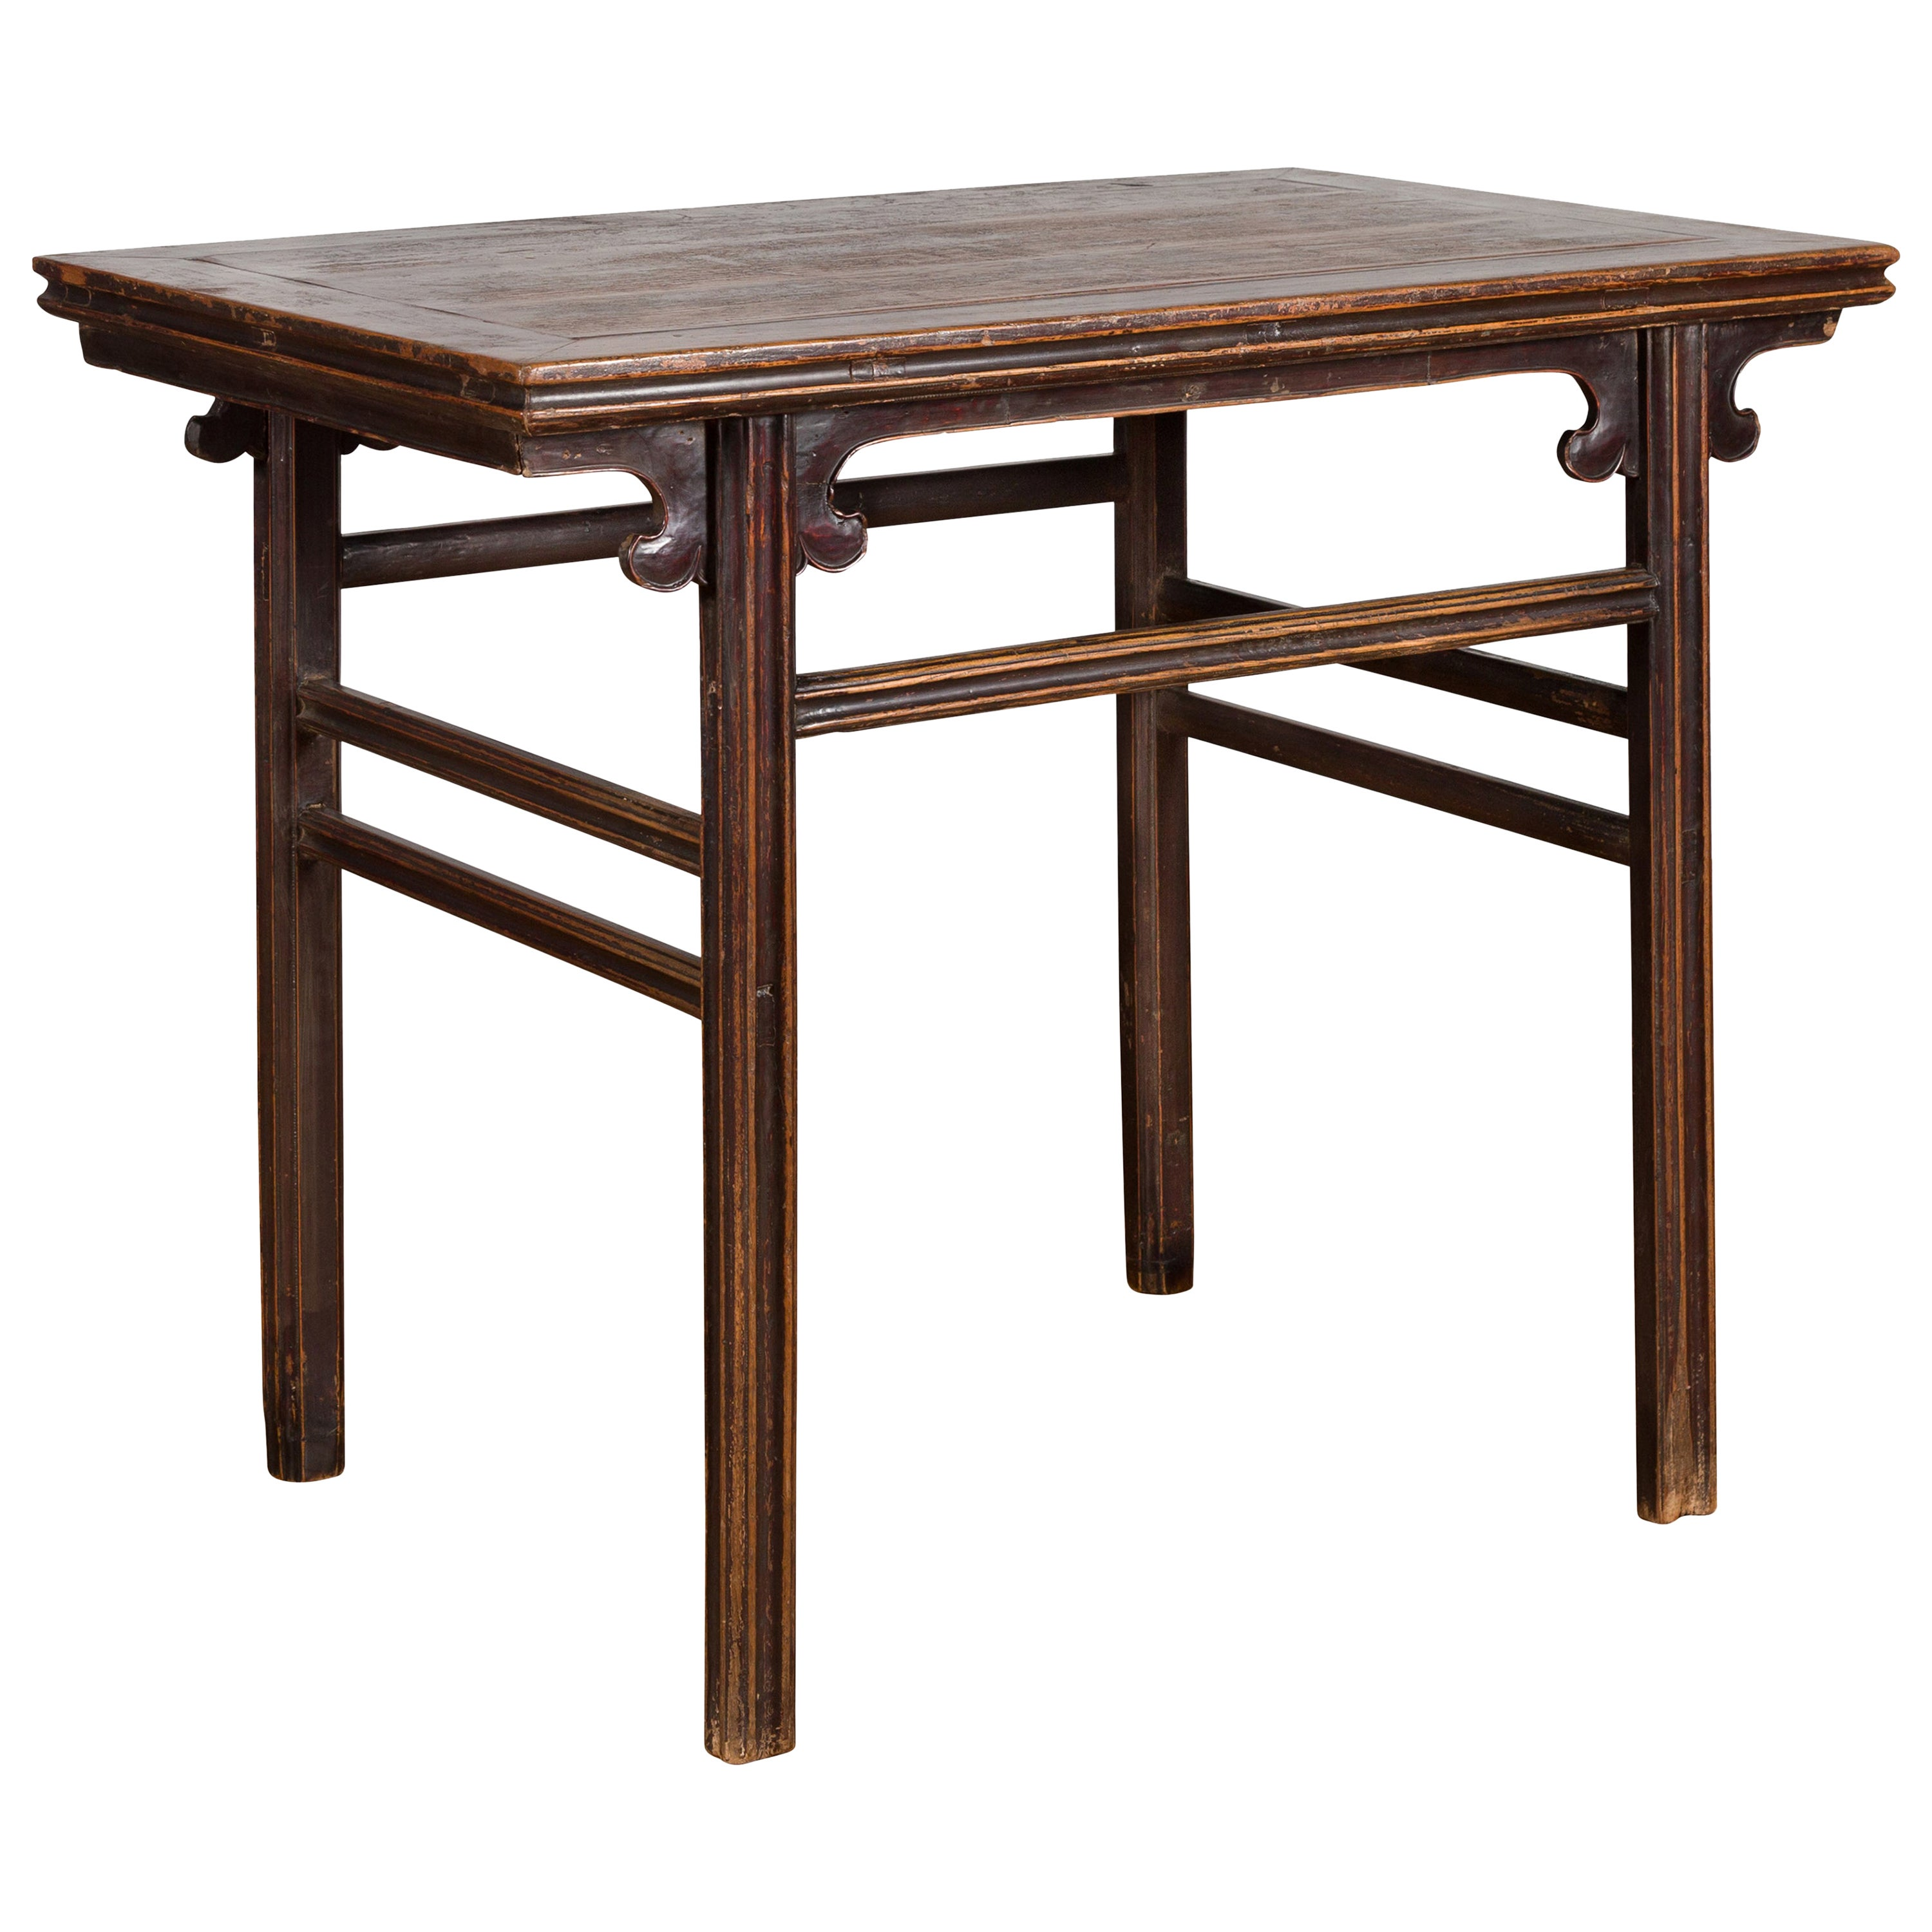 Chinese Ming Dynasty Style 19th Century Wine Table with Carved Cloudy Spandrels